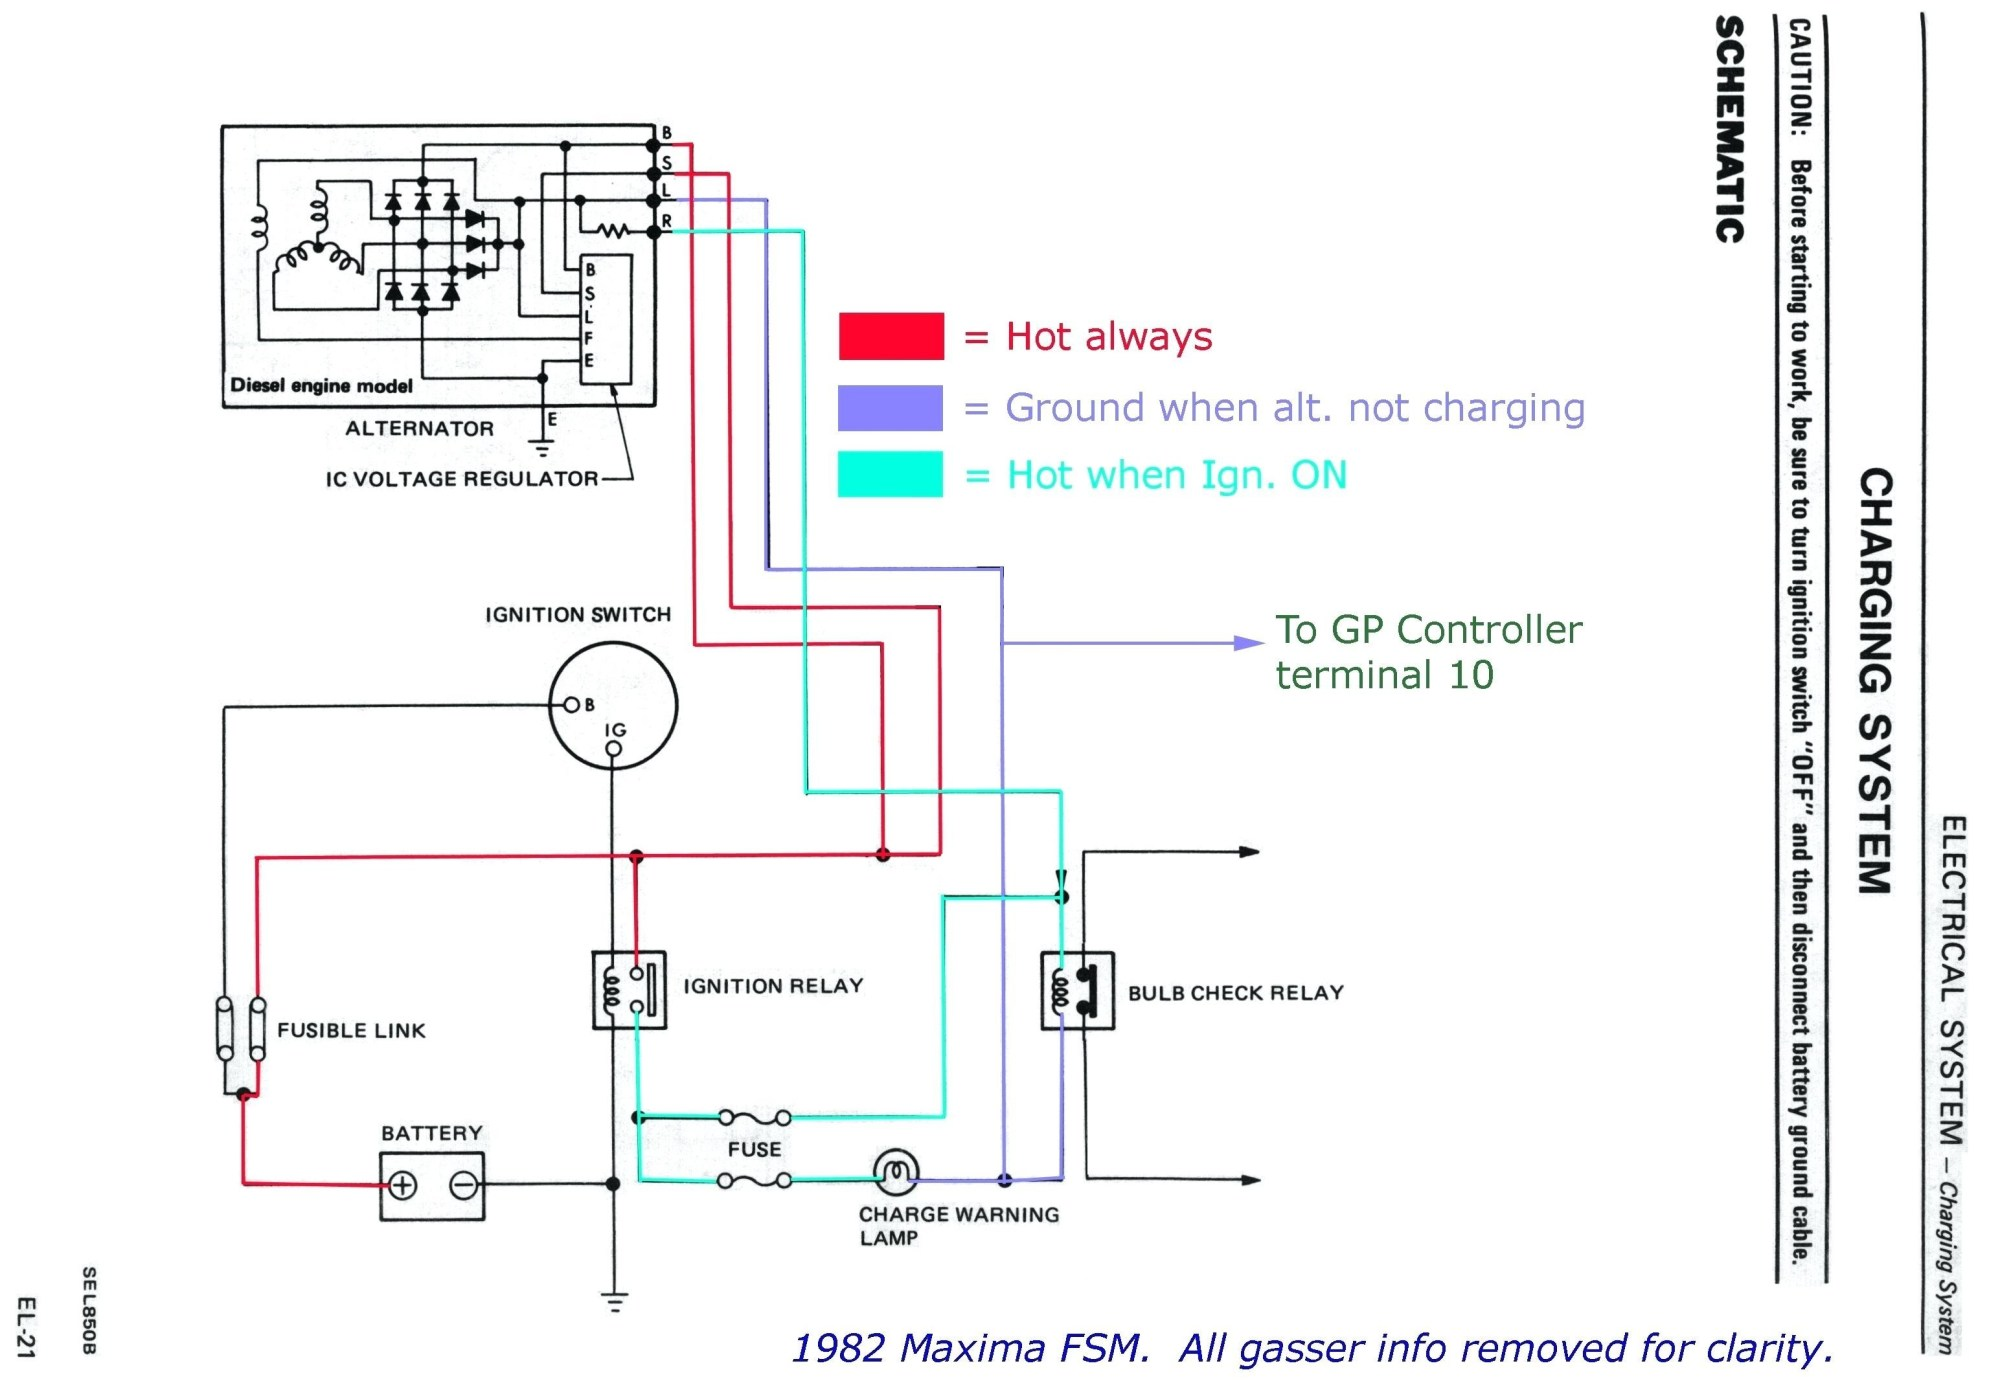 hight resolution of 1984 toyota pickup alternator wiring along with 1980 toyota wiring 87 toyota pickup alternator pigtail wiring diagram